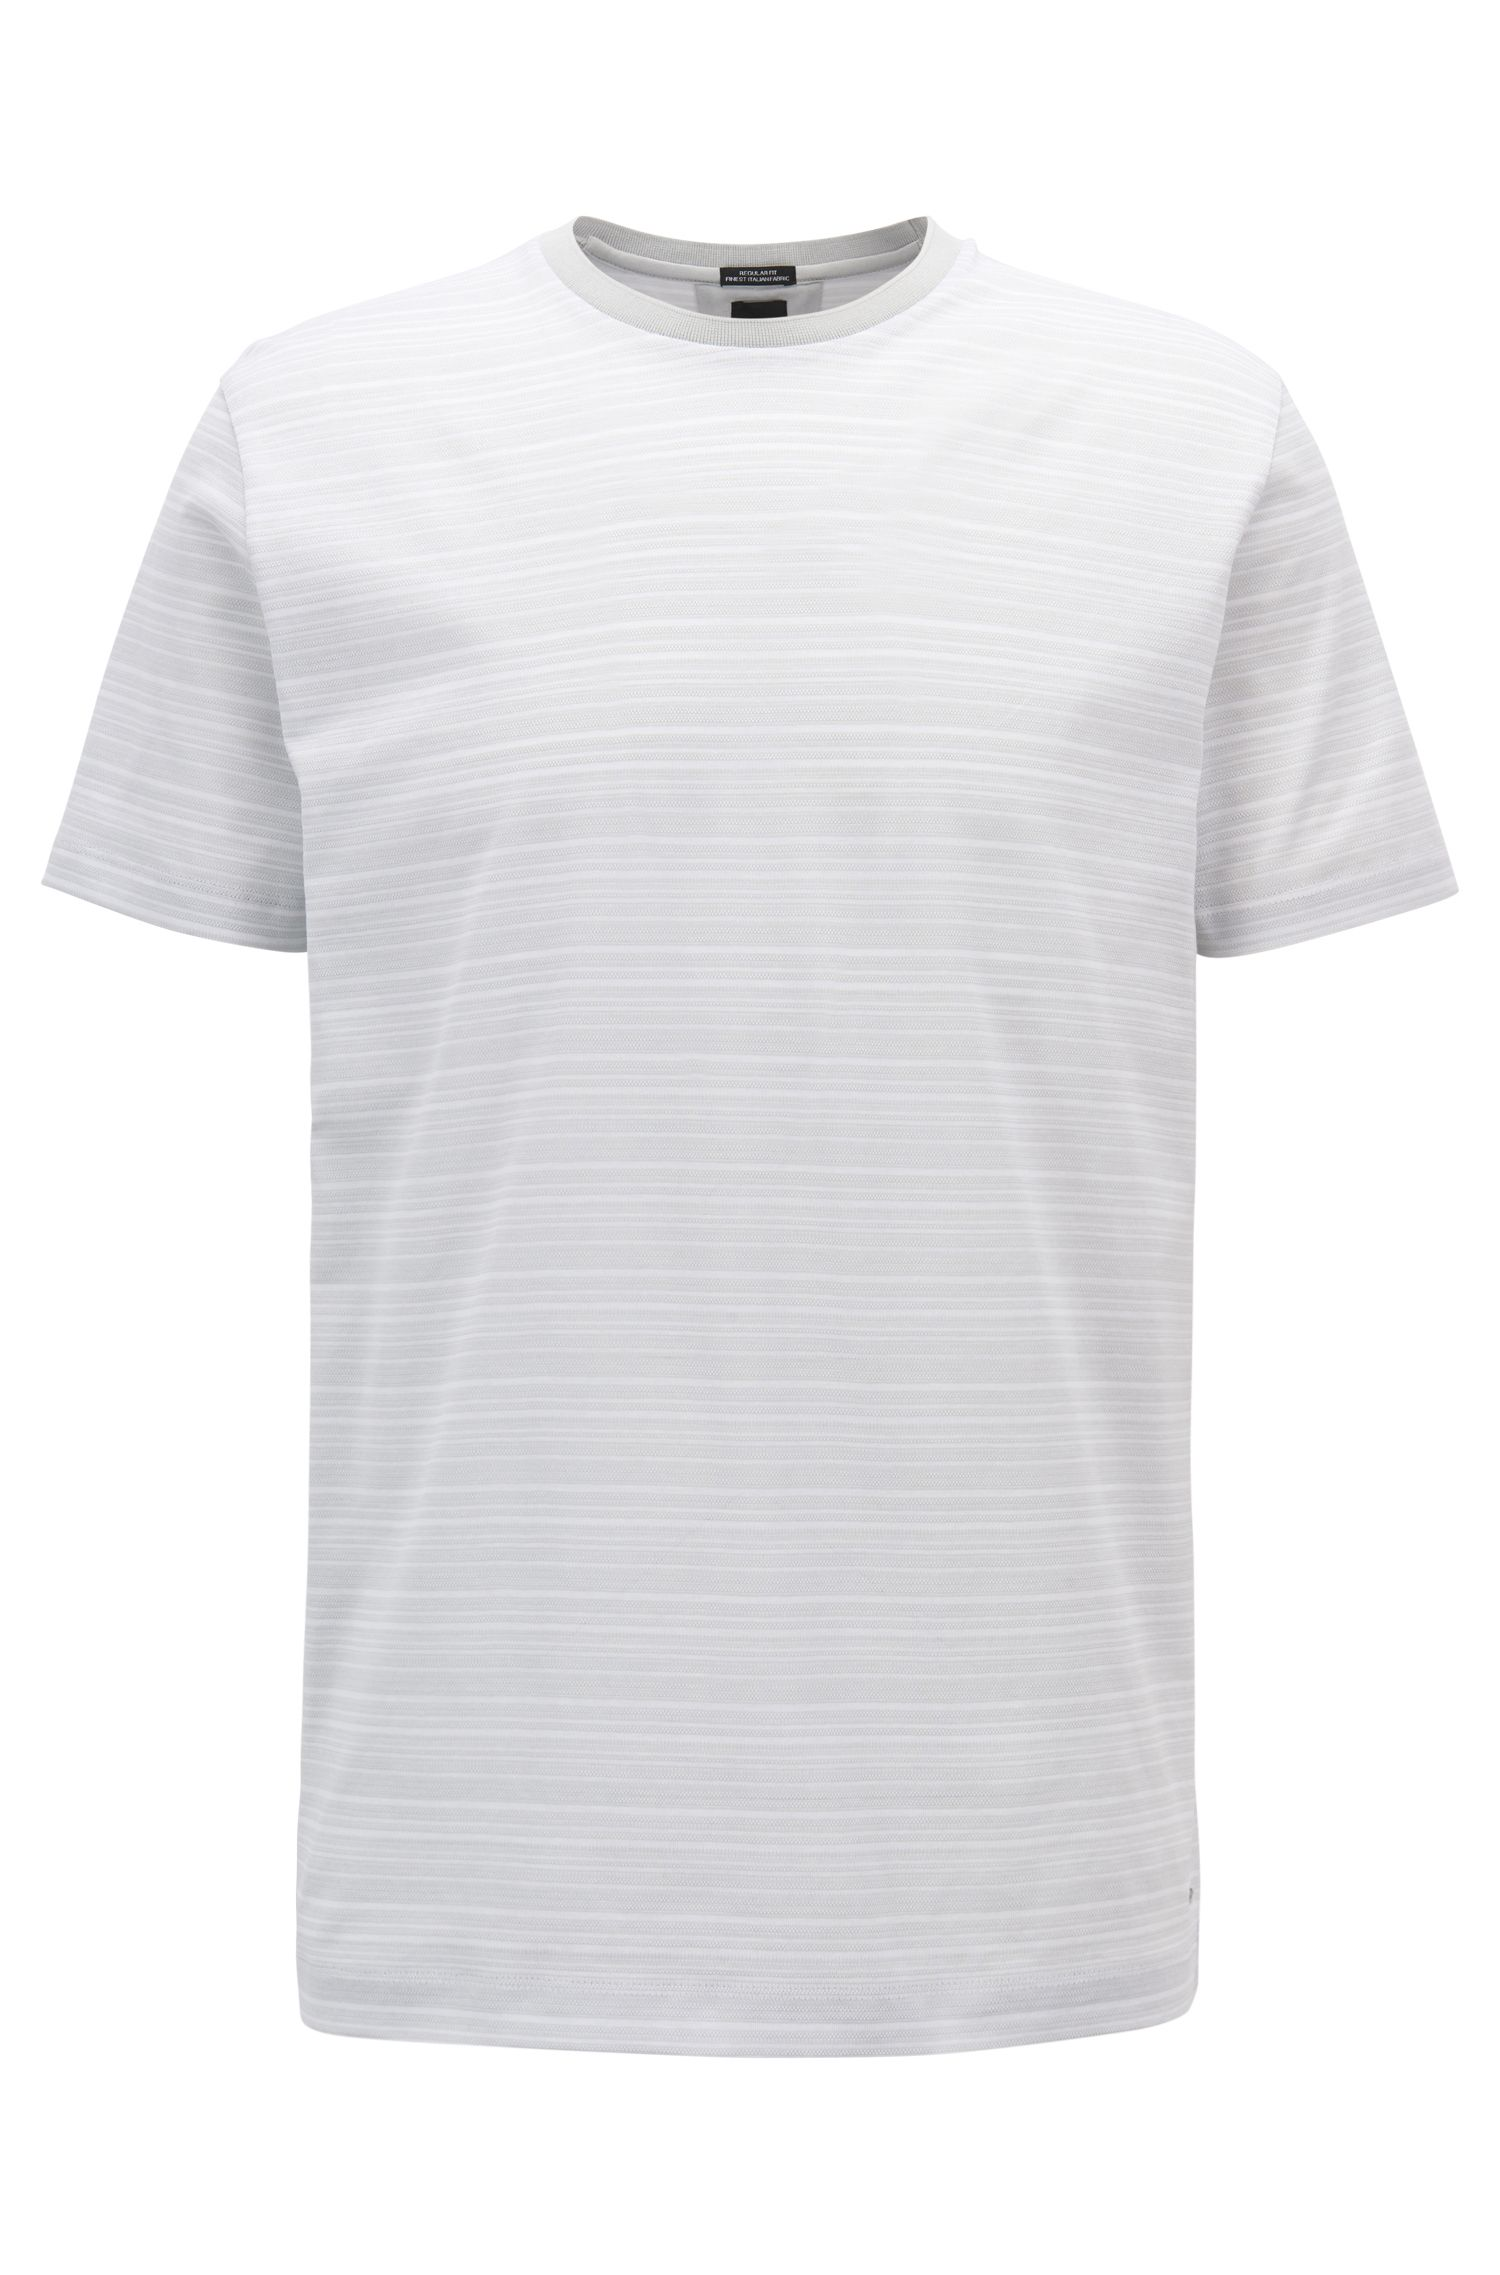 Cotton Linen T-Shirt | T-Tesar